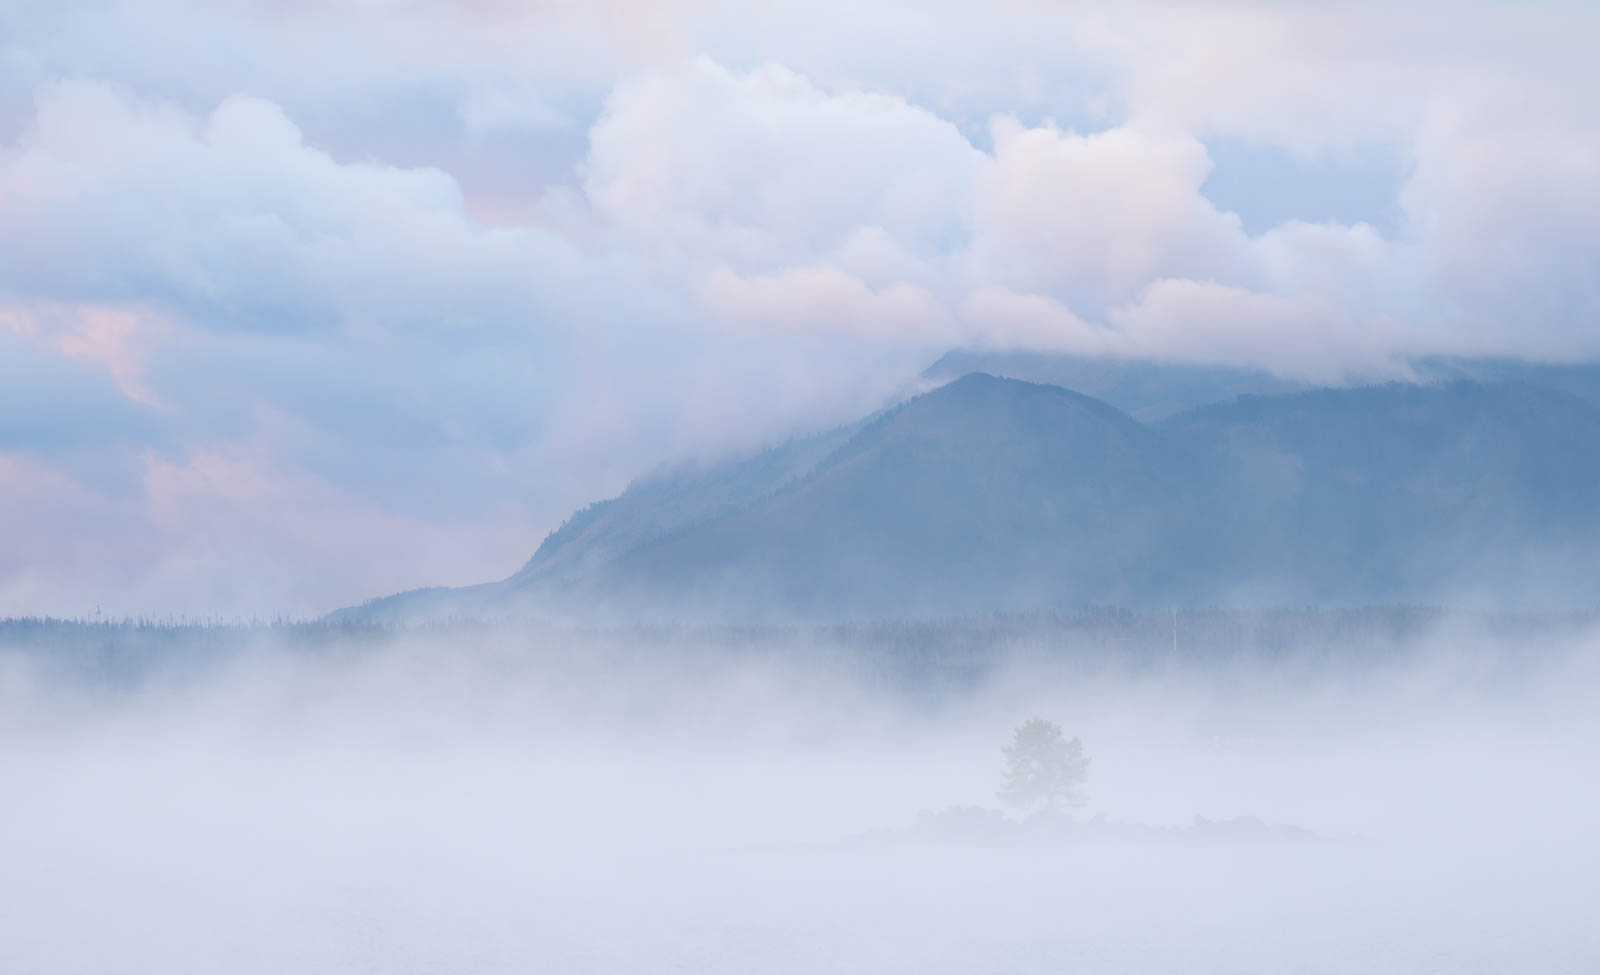 Upon seeing this island in Yellowstone years ago I knew I wanted to capture it on a foggy morning. The timing finally worked...